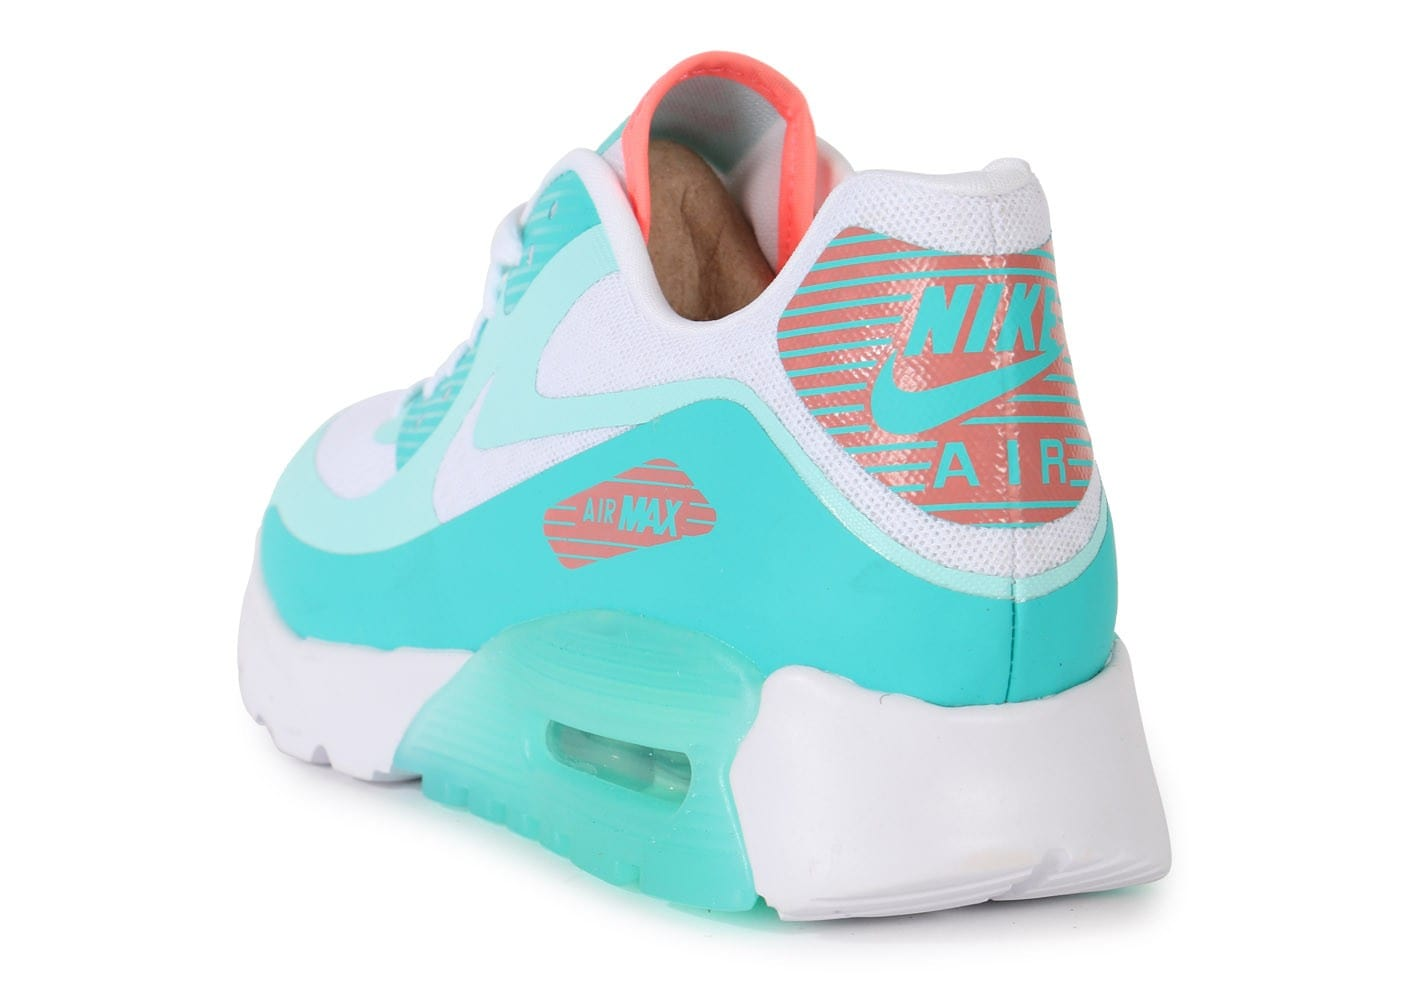 low cost 6d536 ef8a6 nike - air max 90 ultra br - baskets - turquoise